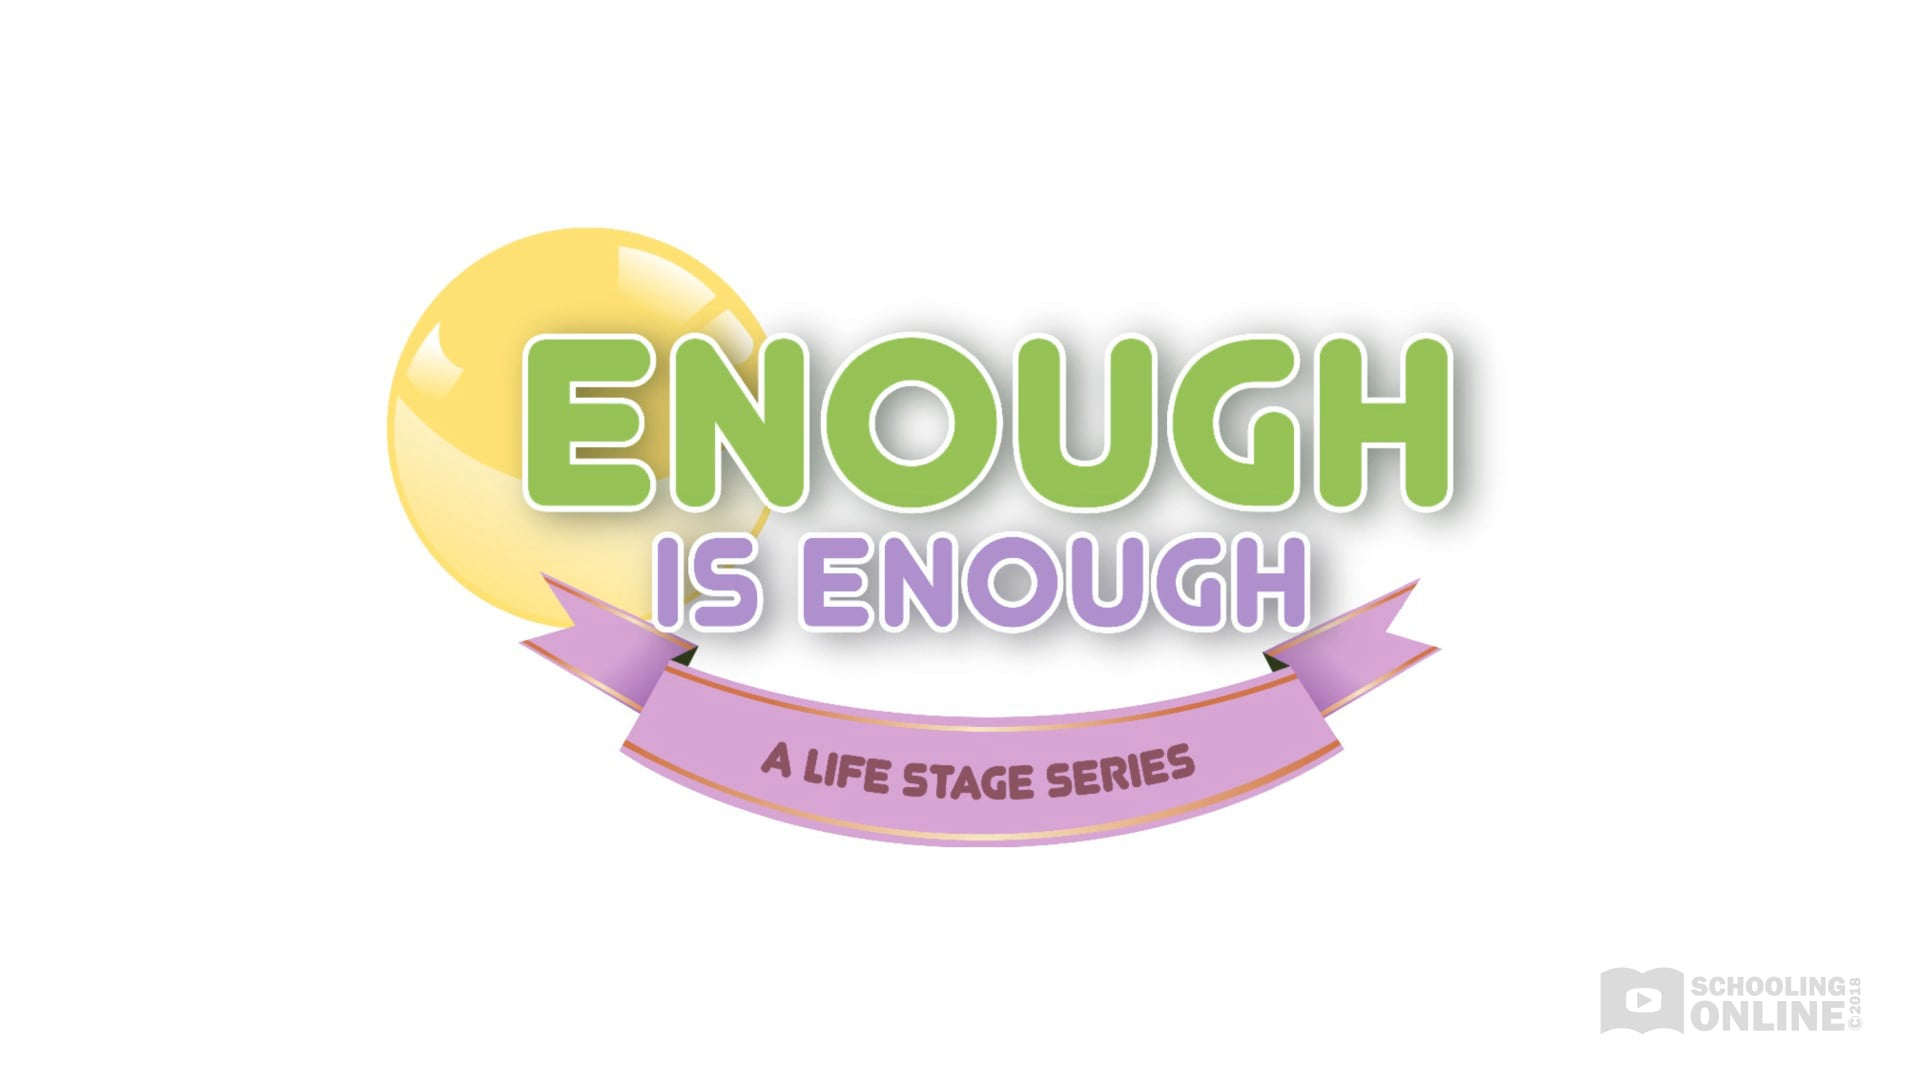 Enough is Enough - The Life Stage Series